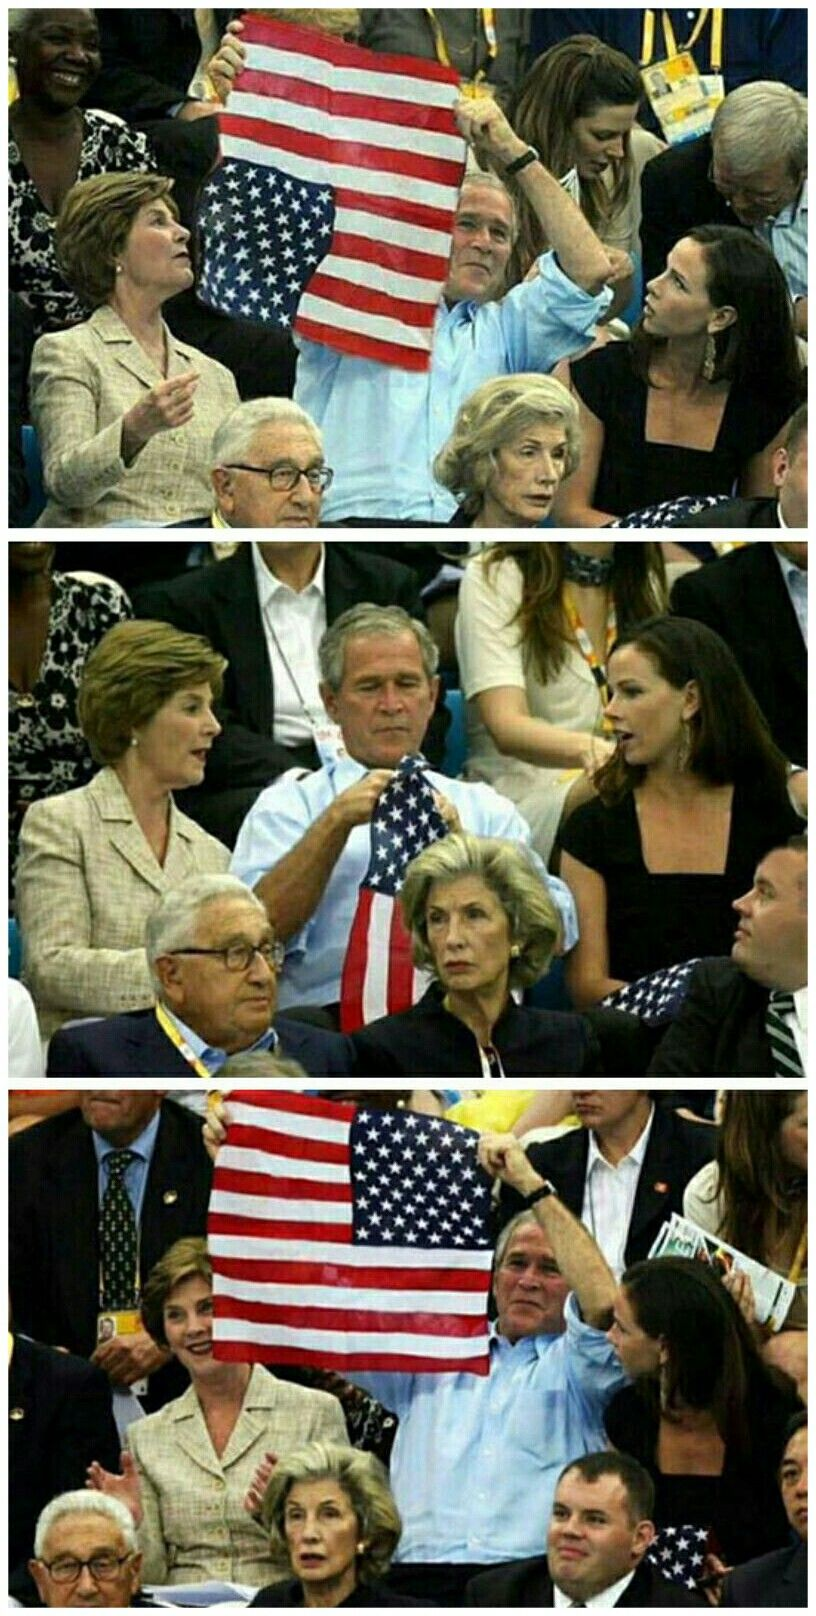 And this guy was president Best funny images, Best funny